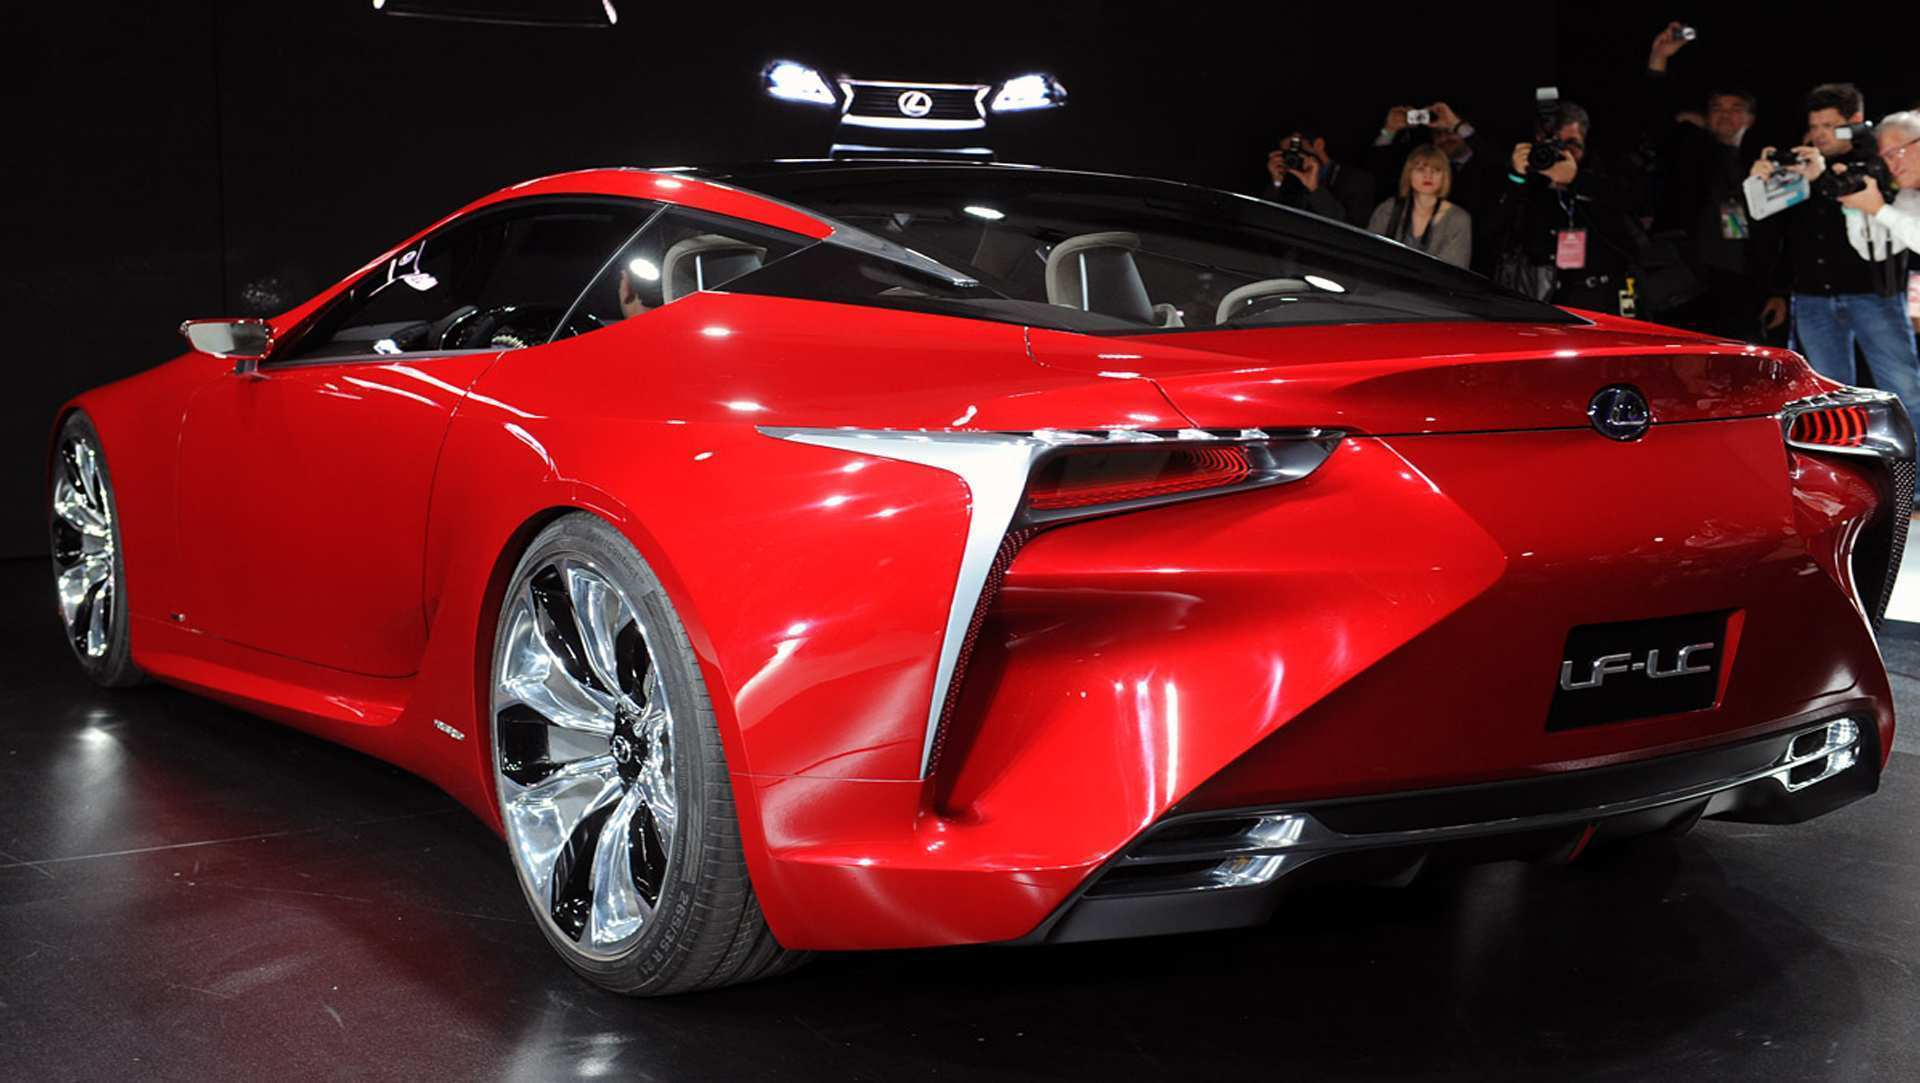 80 All New Lexus 2020 Coupe Specs by Lexus 2020 Coupe